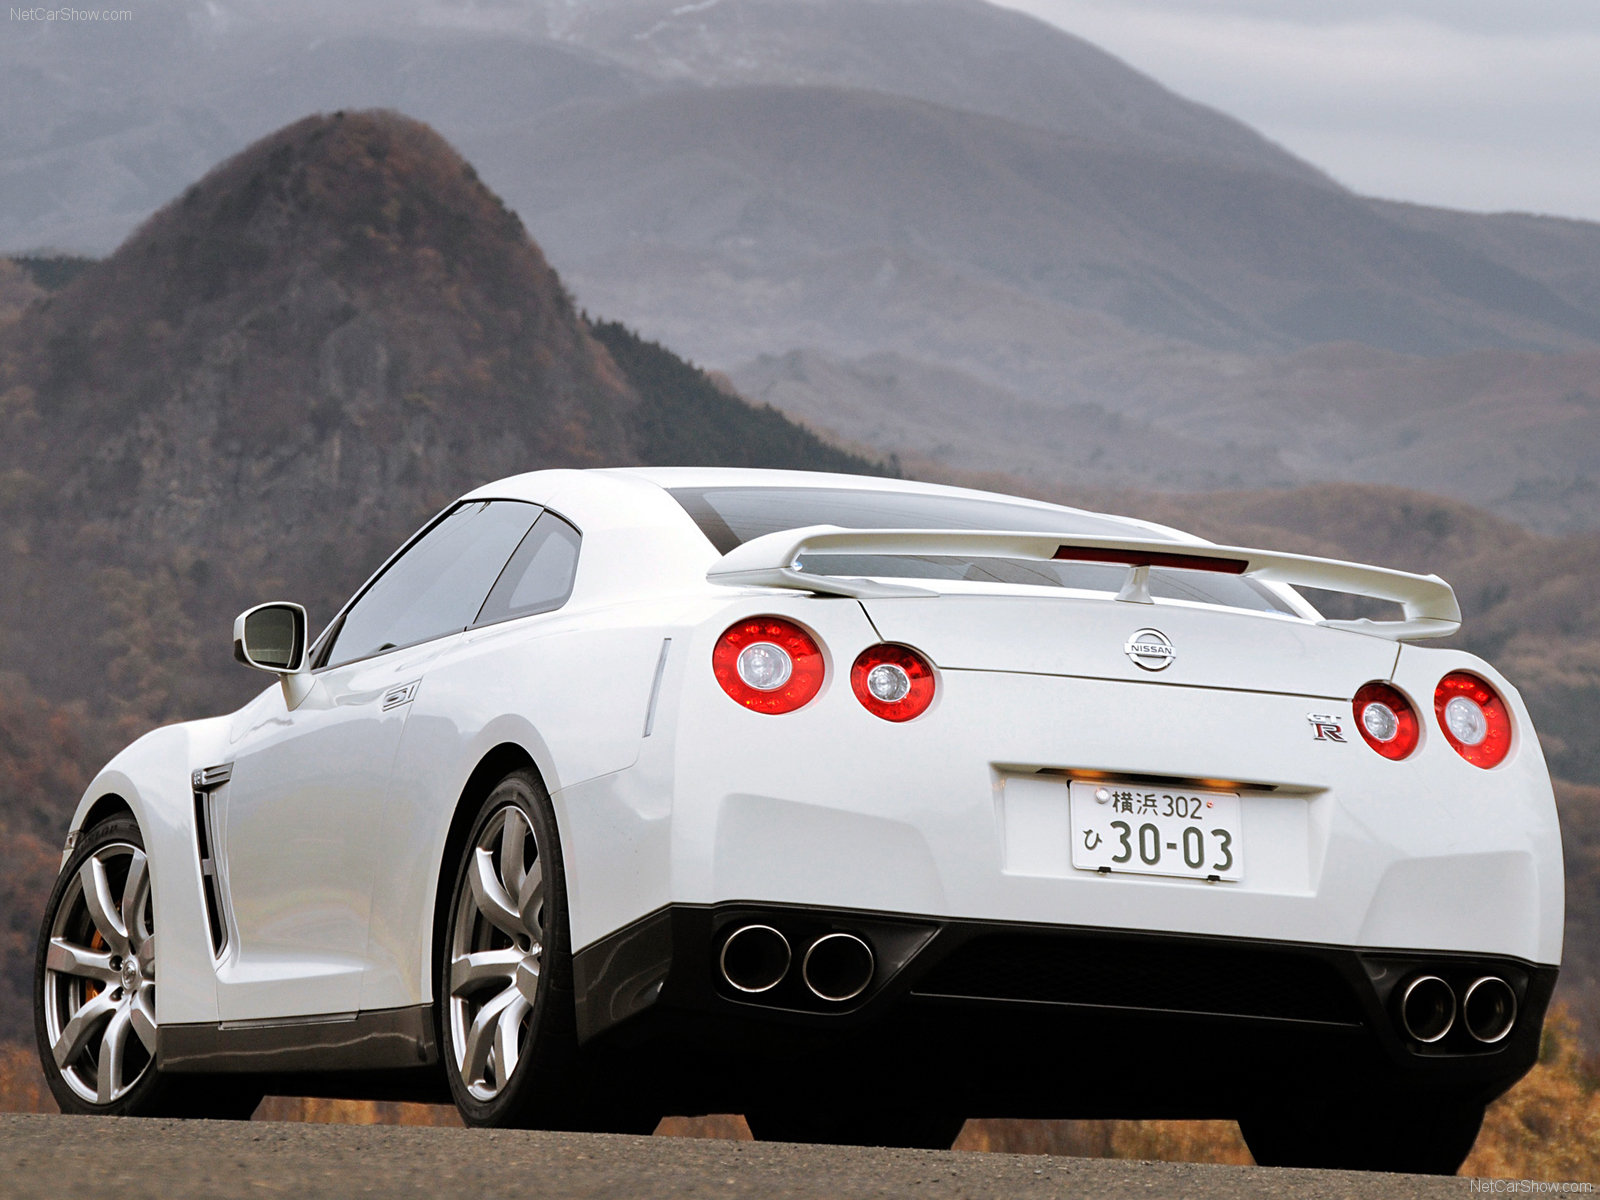 Nissan GT R 2008 1600 x 1200 wallpaper 14